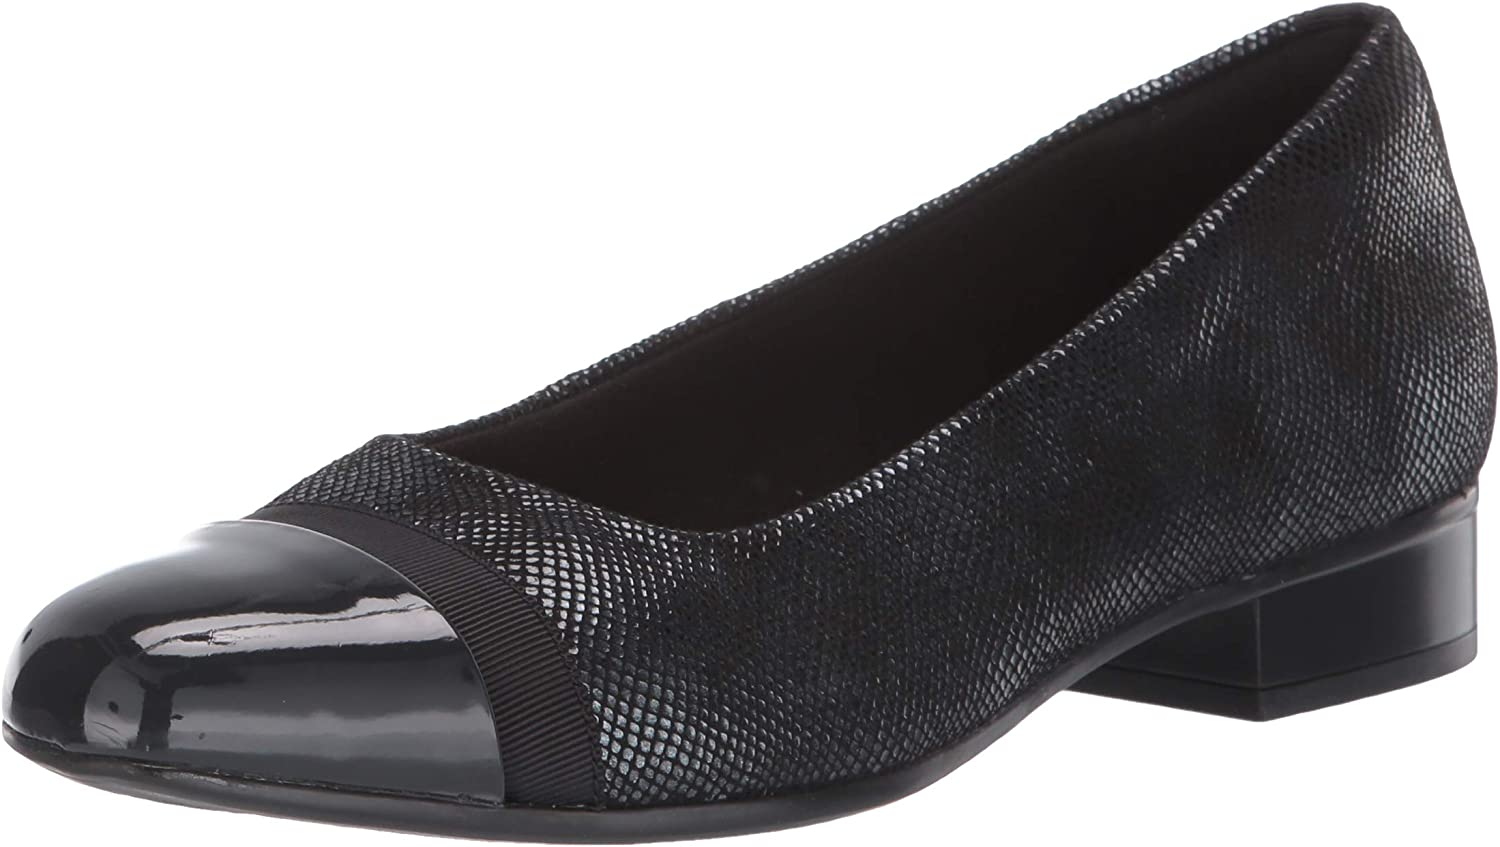 Clarks New product!! Women's Juliet Monte Brand Cheap Sale Venue Loafer Synthetic Print Black Suede